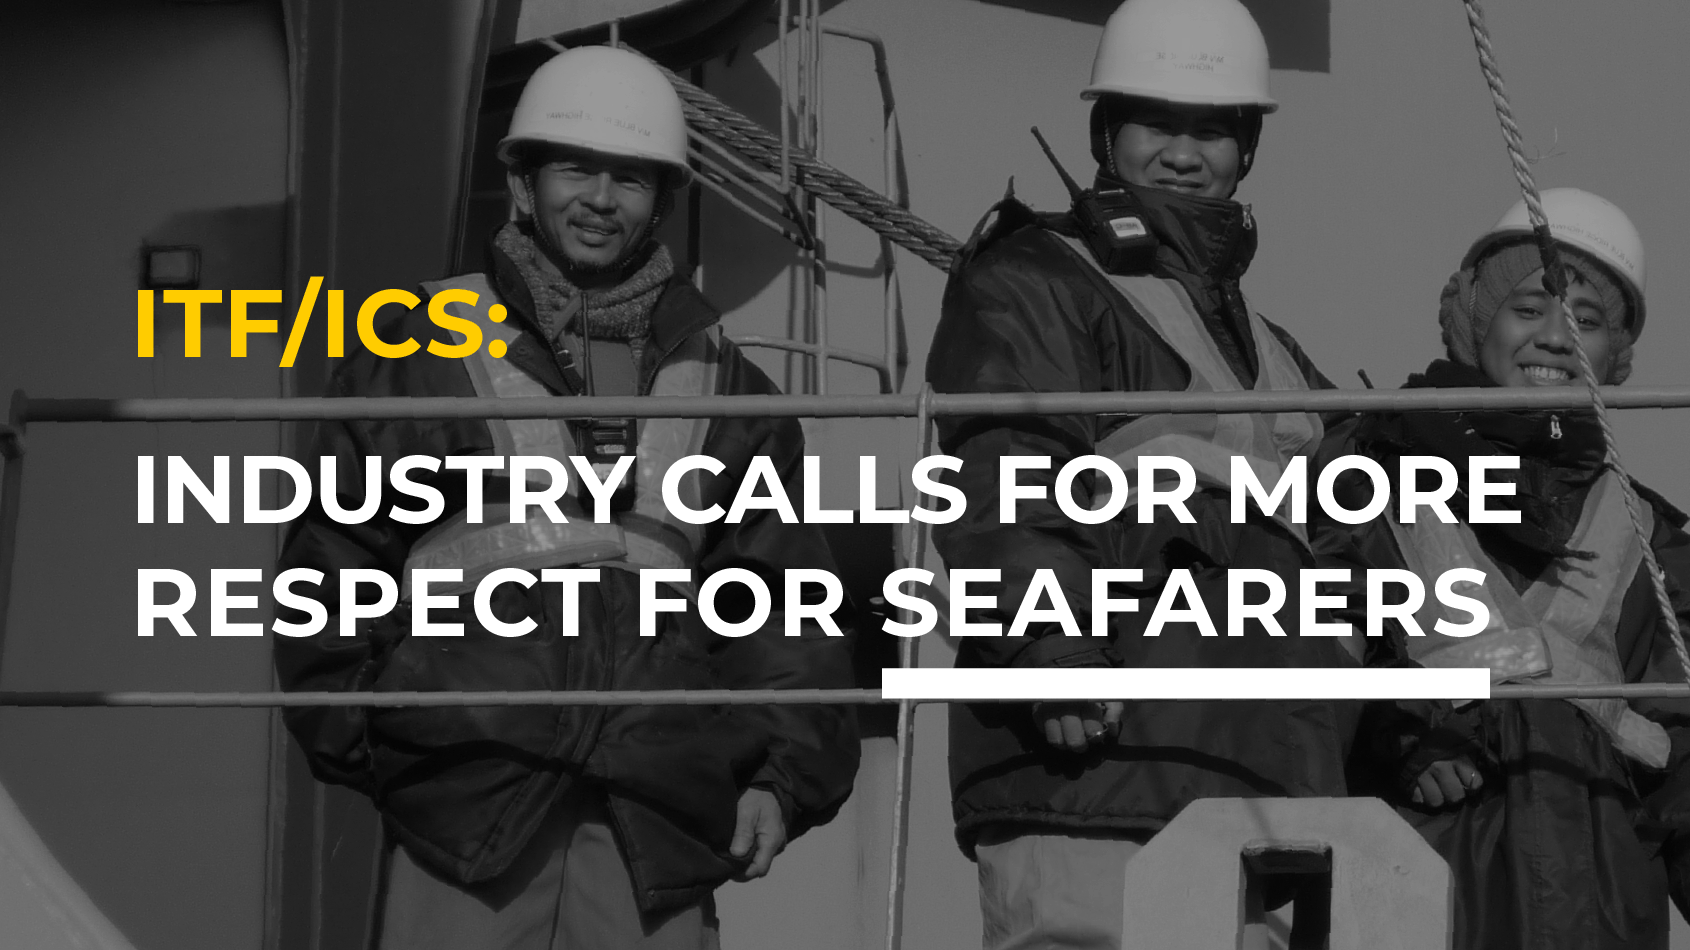 Shipping Industry: Seafarers Key to Keeping Trade Afloat Amid Pandemic